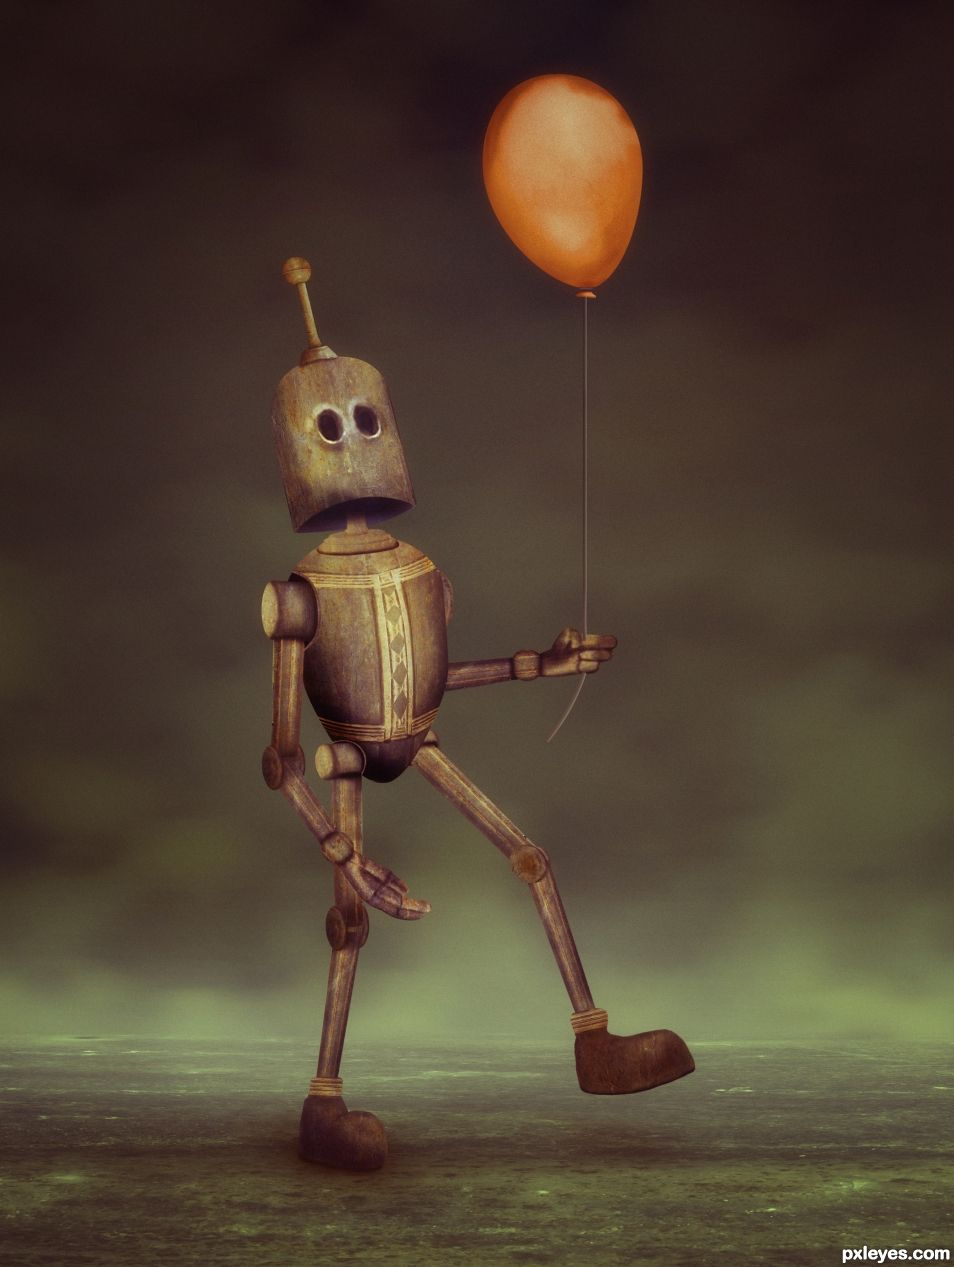 Creation of Robot and His Balloon: Final Result